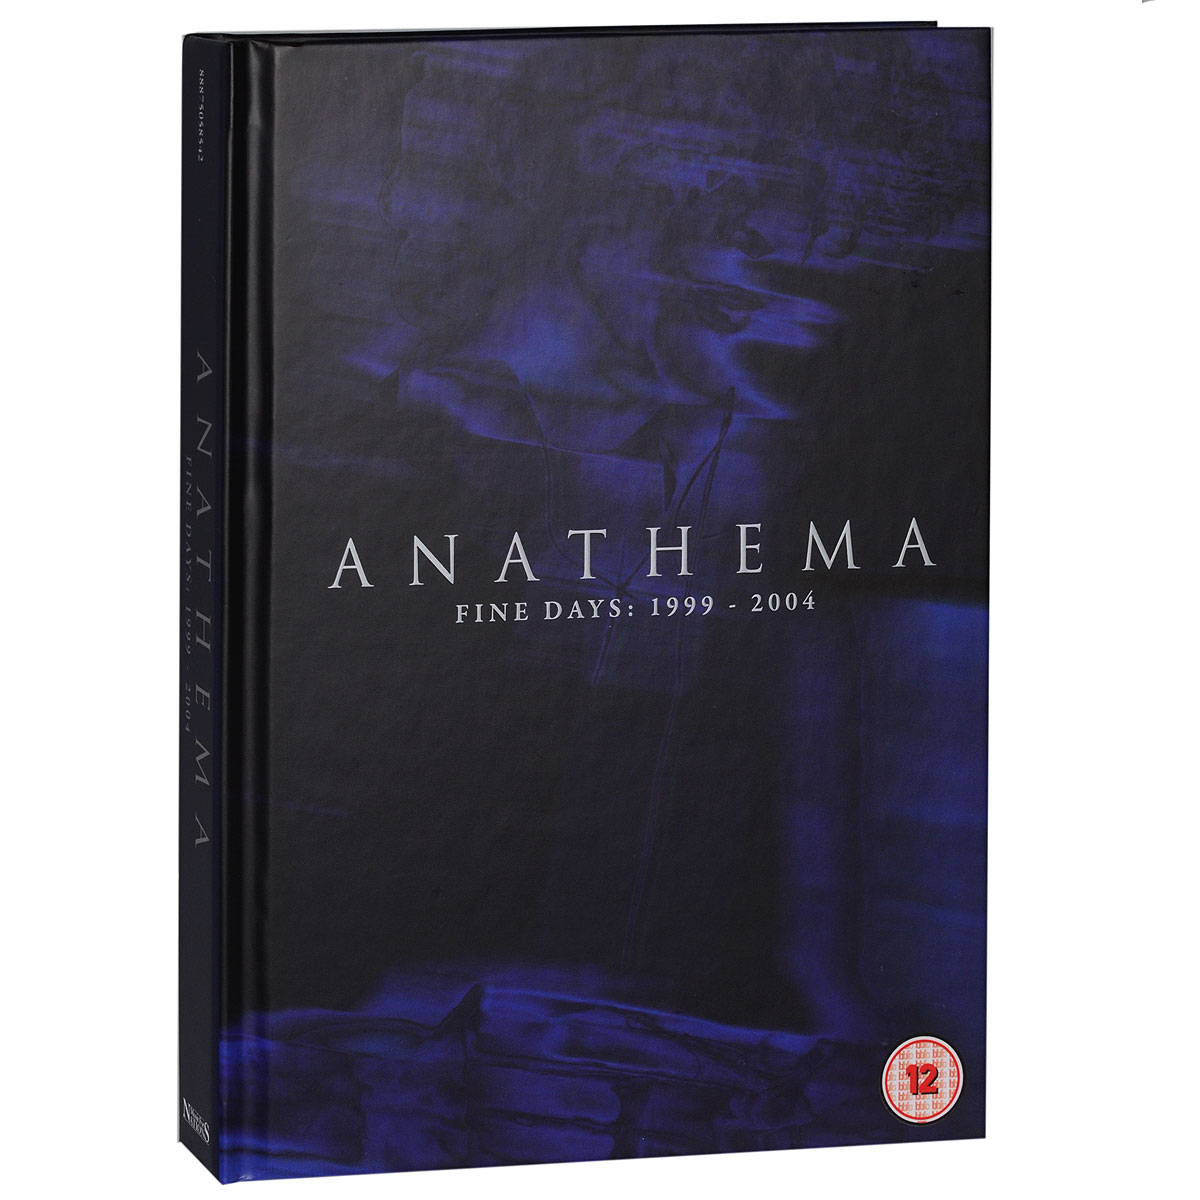 Anathema Anathema. Fine Days. 1999-2004 (3 CD + DVD) two 2 car headrest video dvd player pillow 7inch digital lcd screen monitor multimedia player with remote control fm transmitter